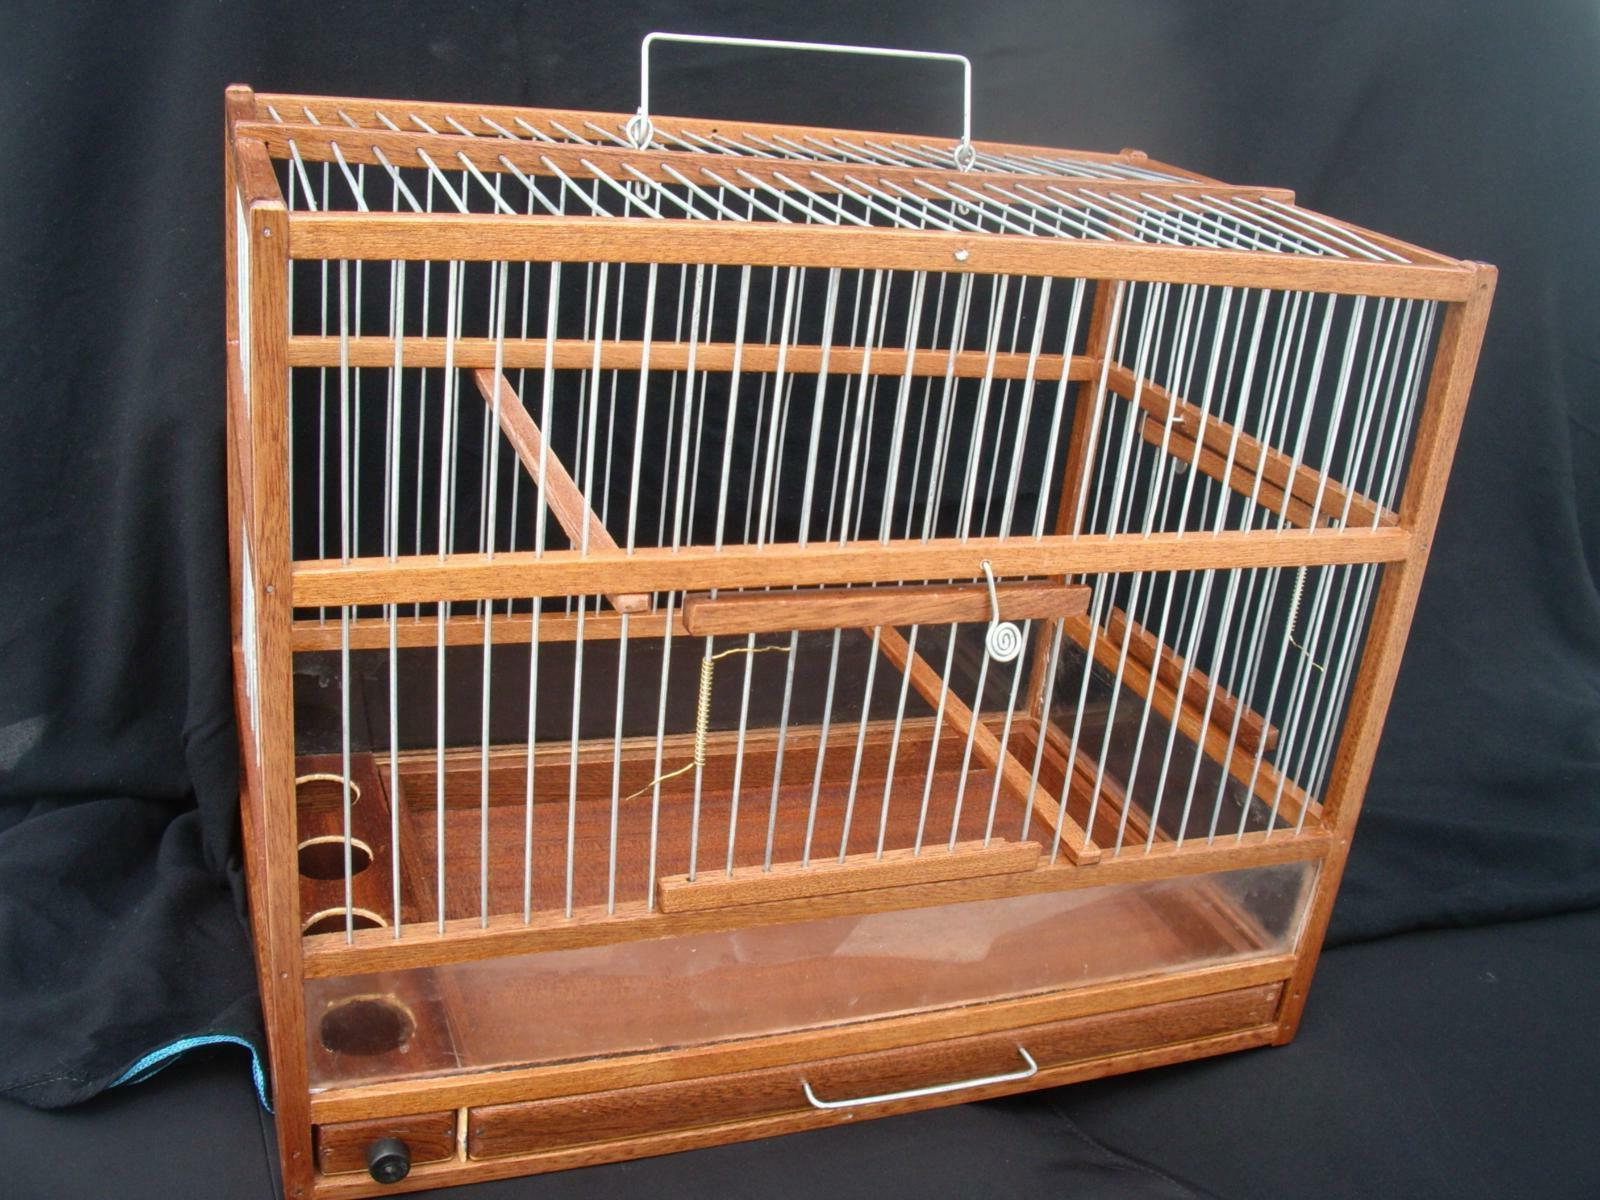 Wooden Bird Cage // Hand Crafted Bird Cage // Slide Out Tray